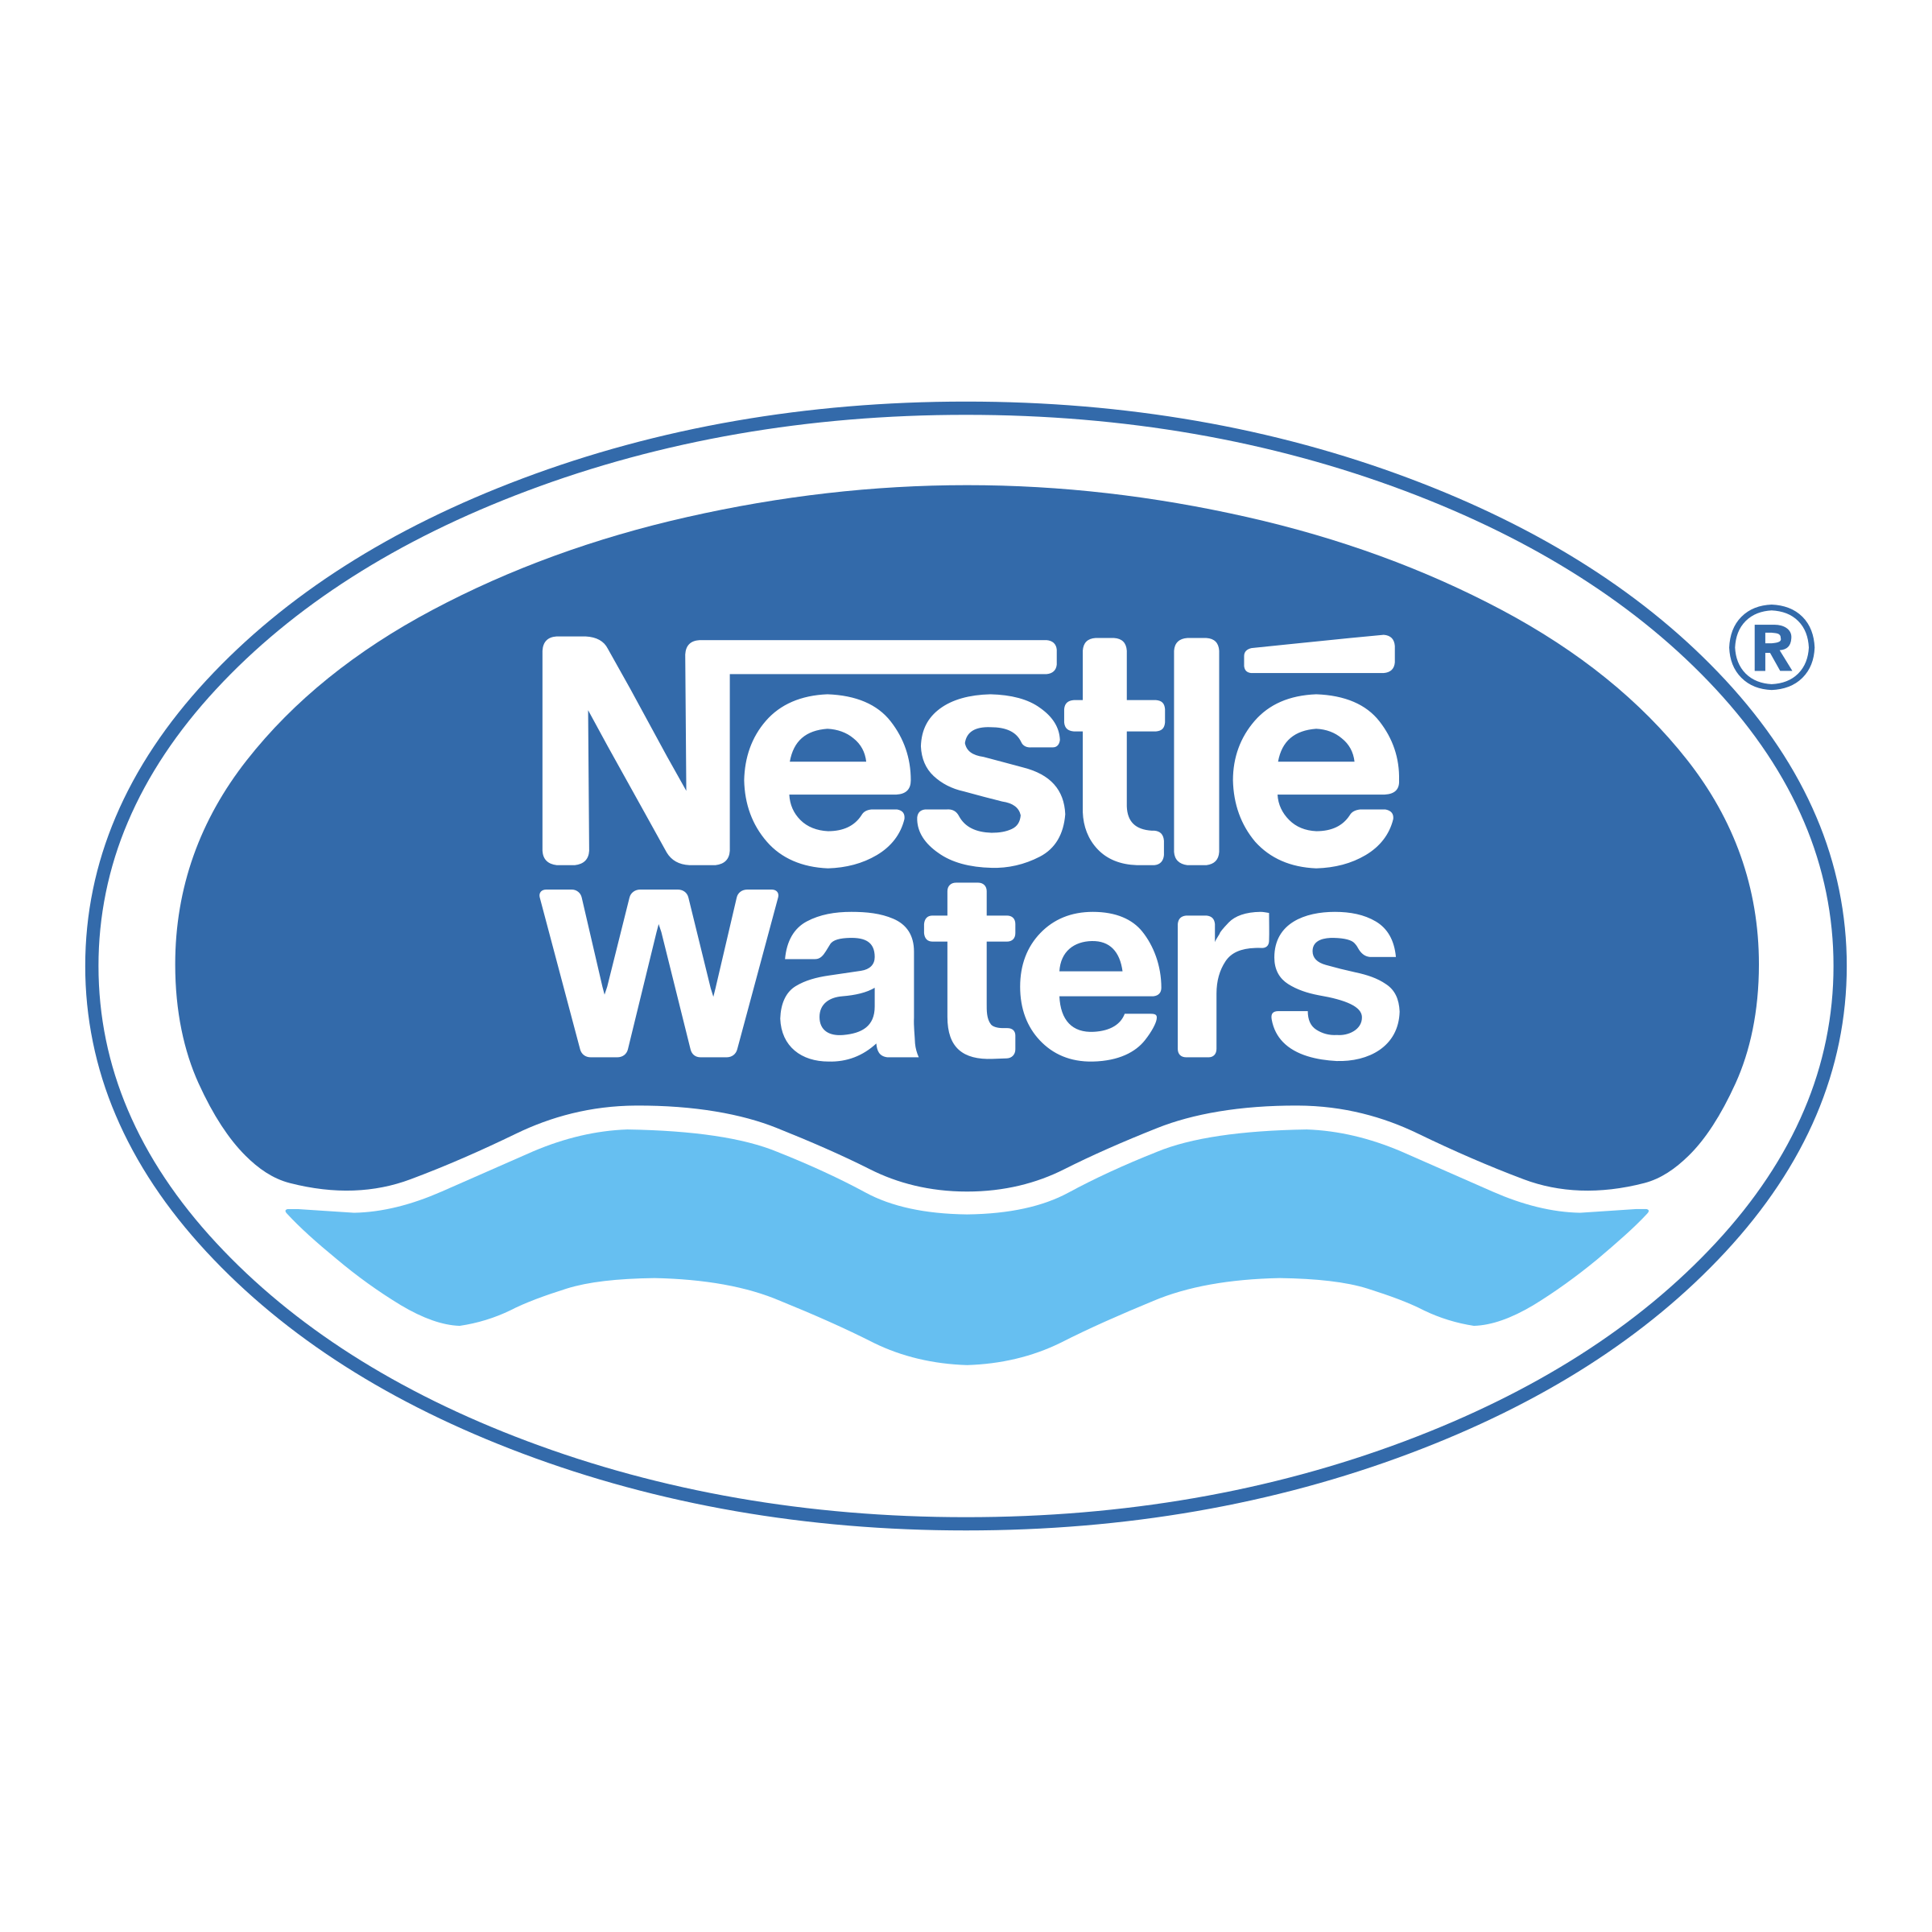 nestle waters logo png transparent amp svg vector freebie